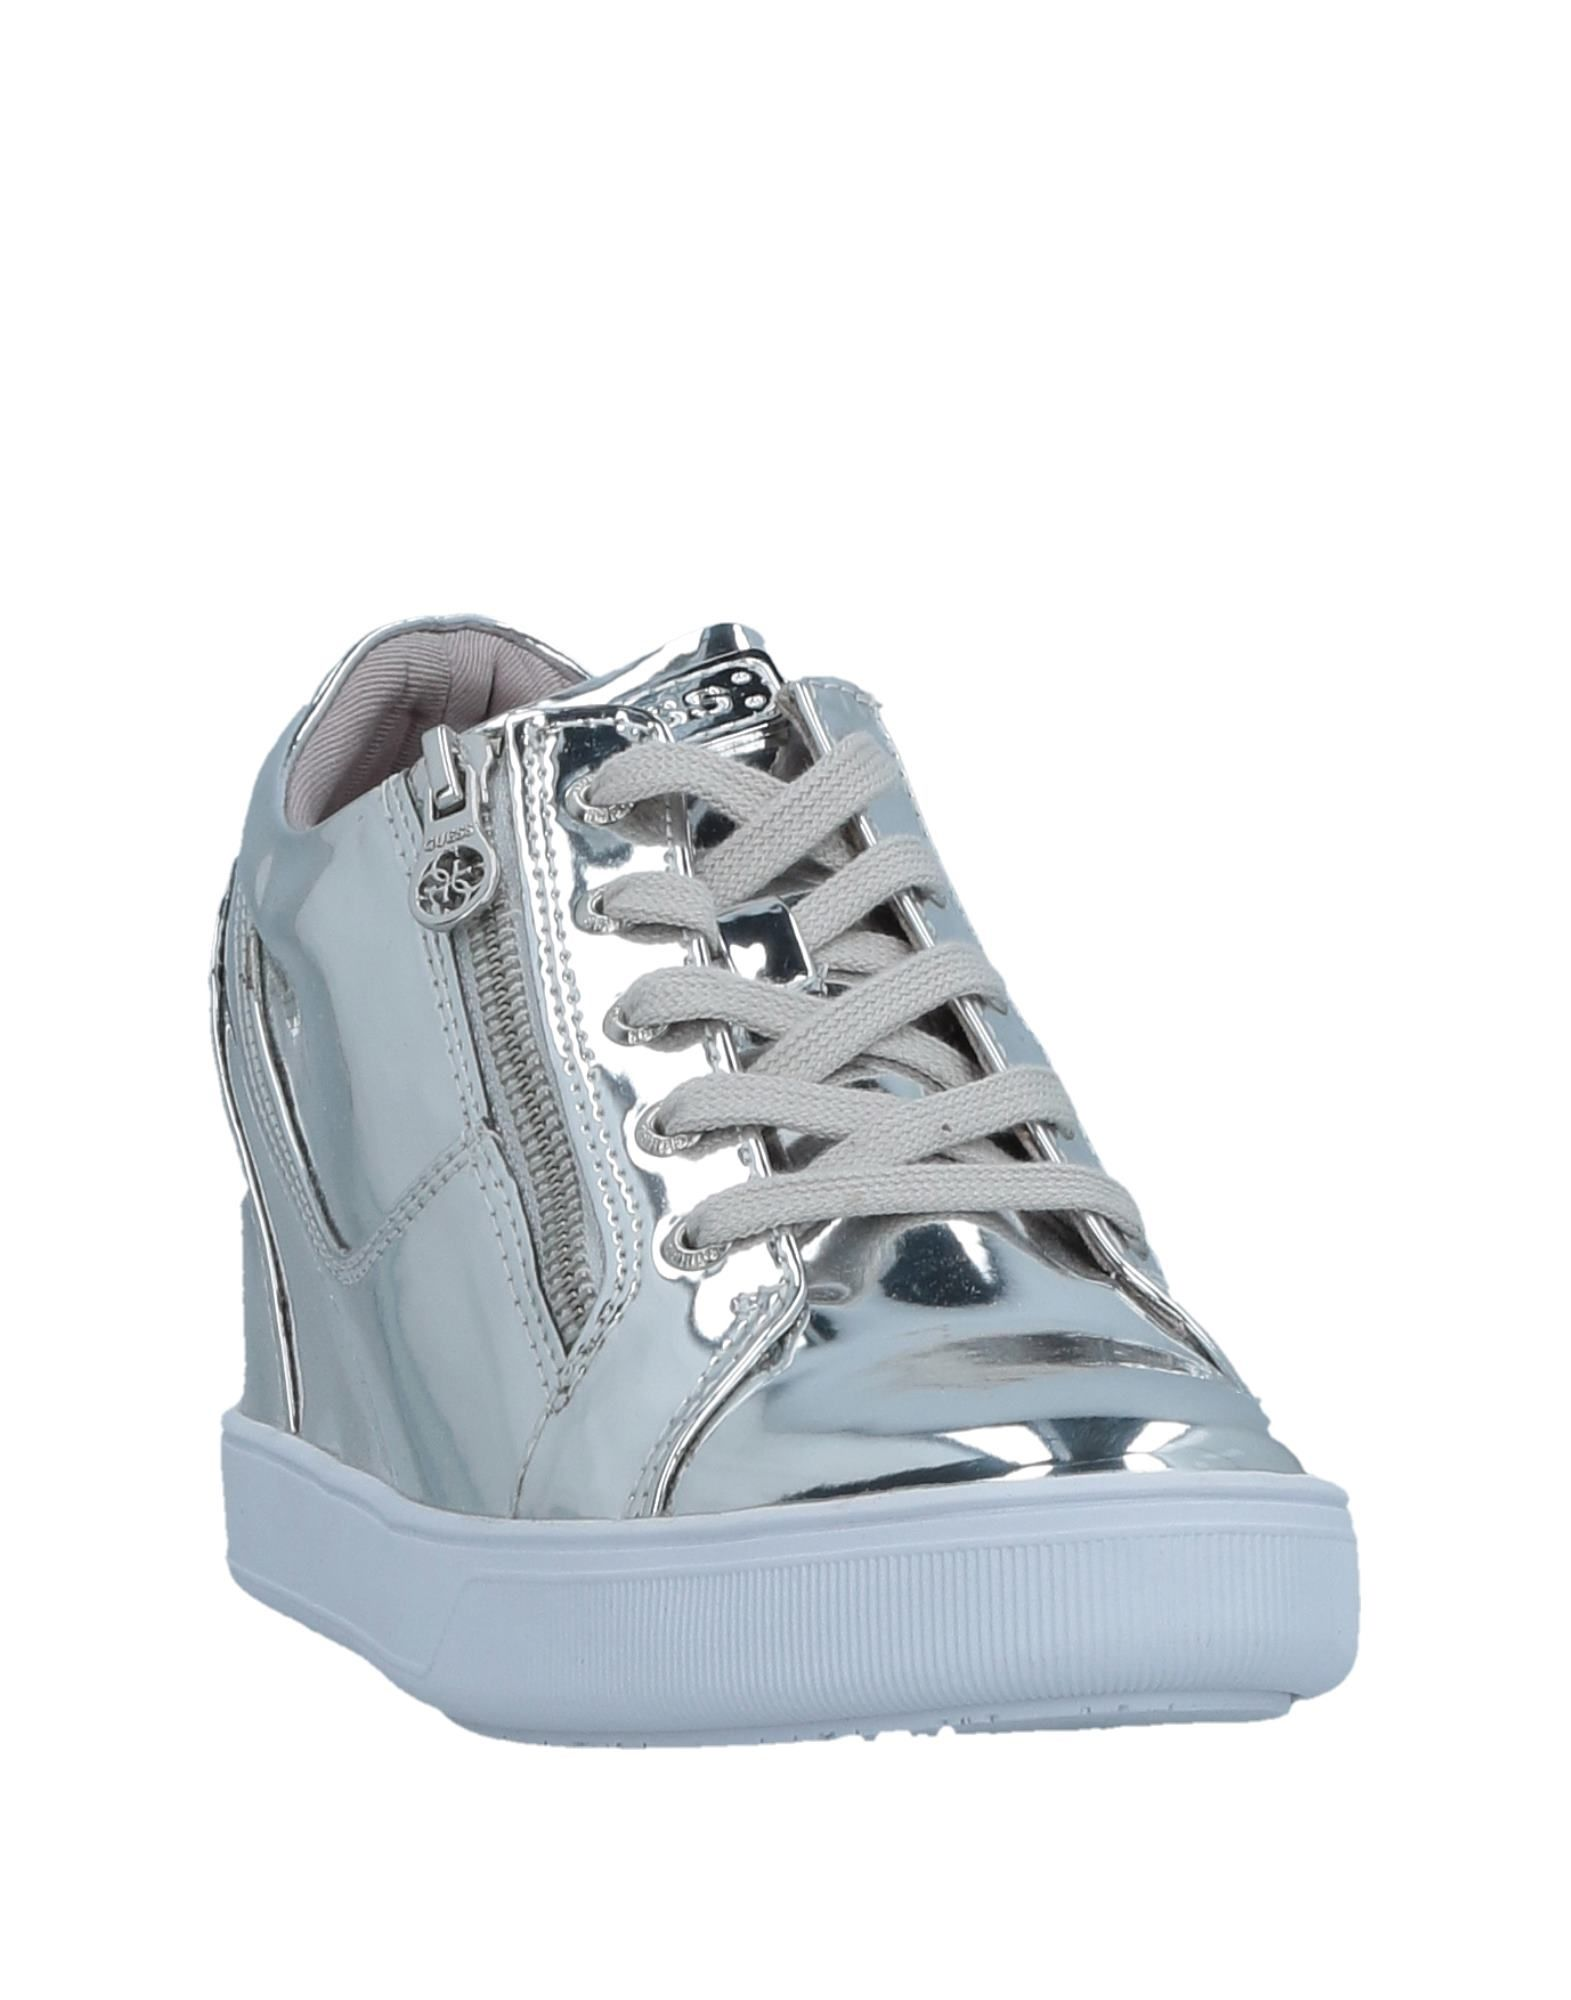 Stilvolle Damen billige Schuhe Guess Sneakers Damen Stilvolle  11521598BT c7d201